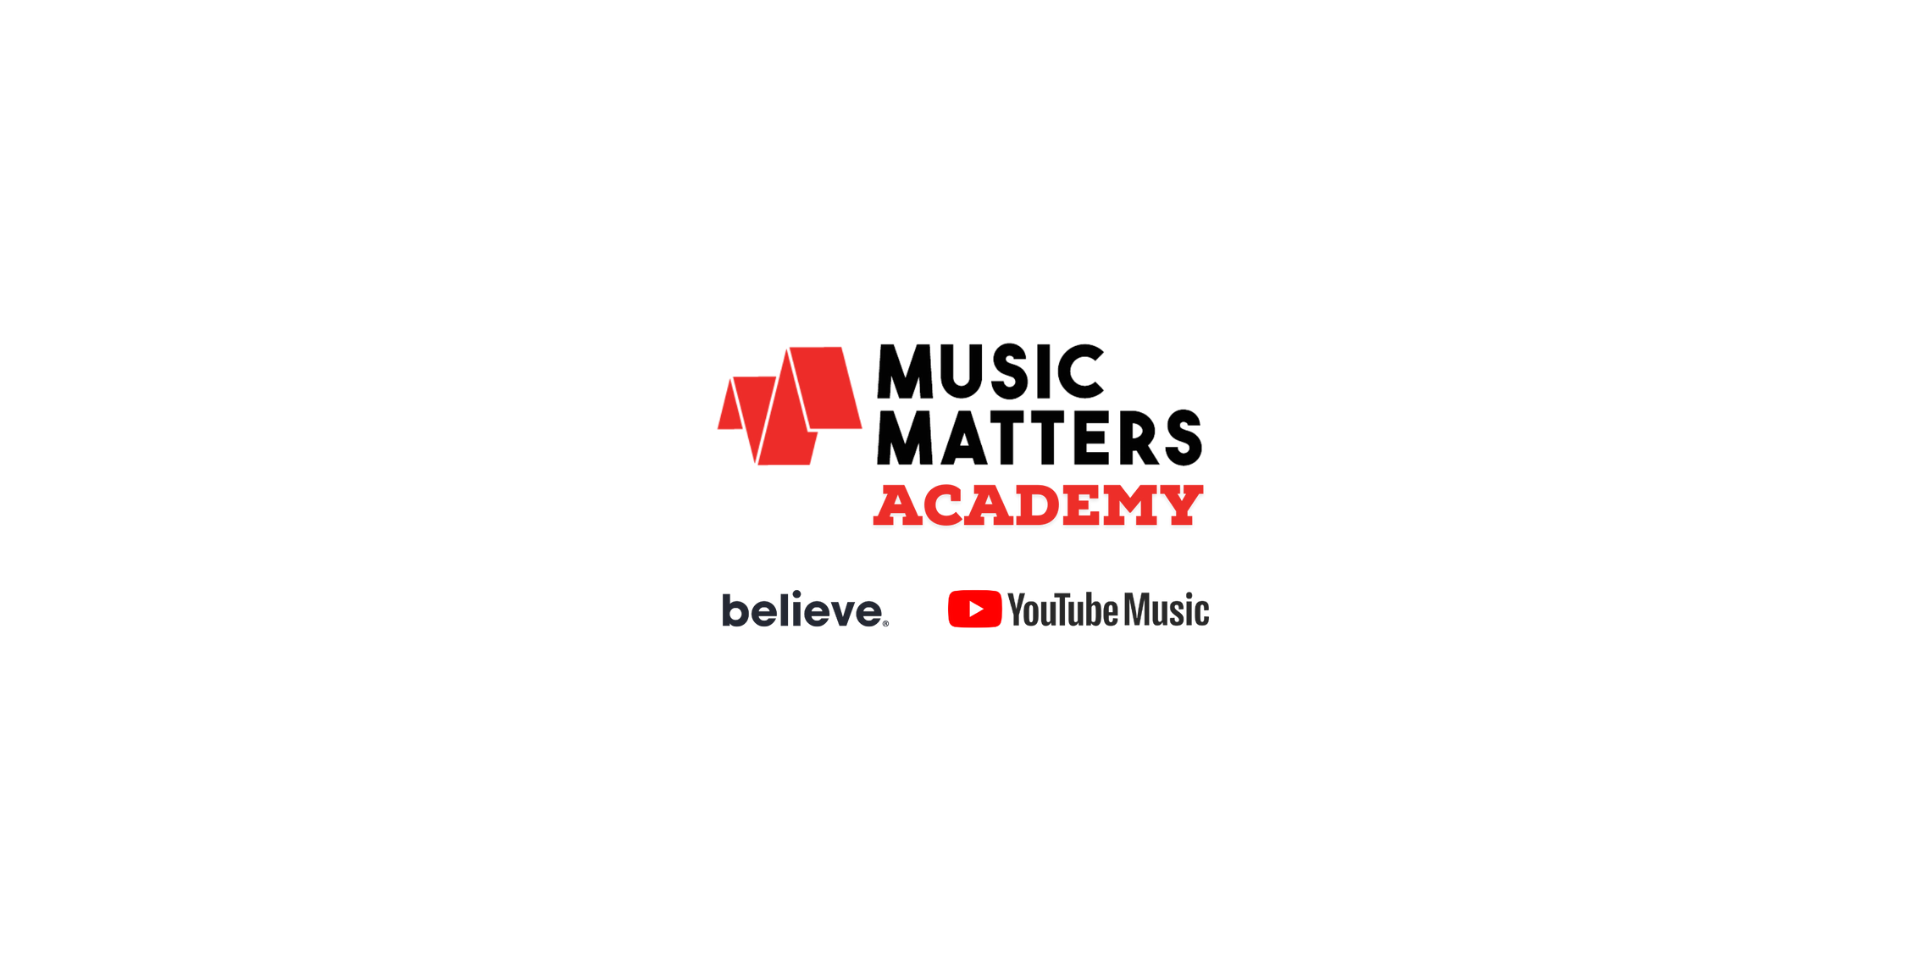 Music Matters Academy connects artists, industry newcomers and young executives to music experts and recipes for success